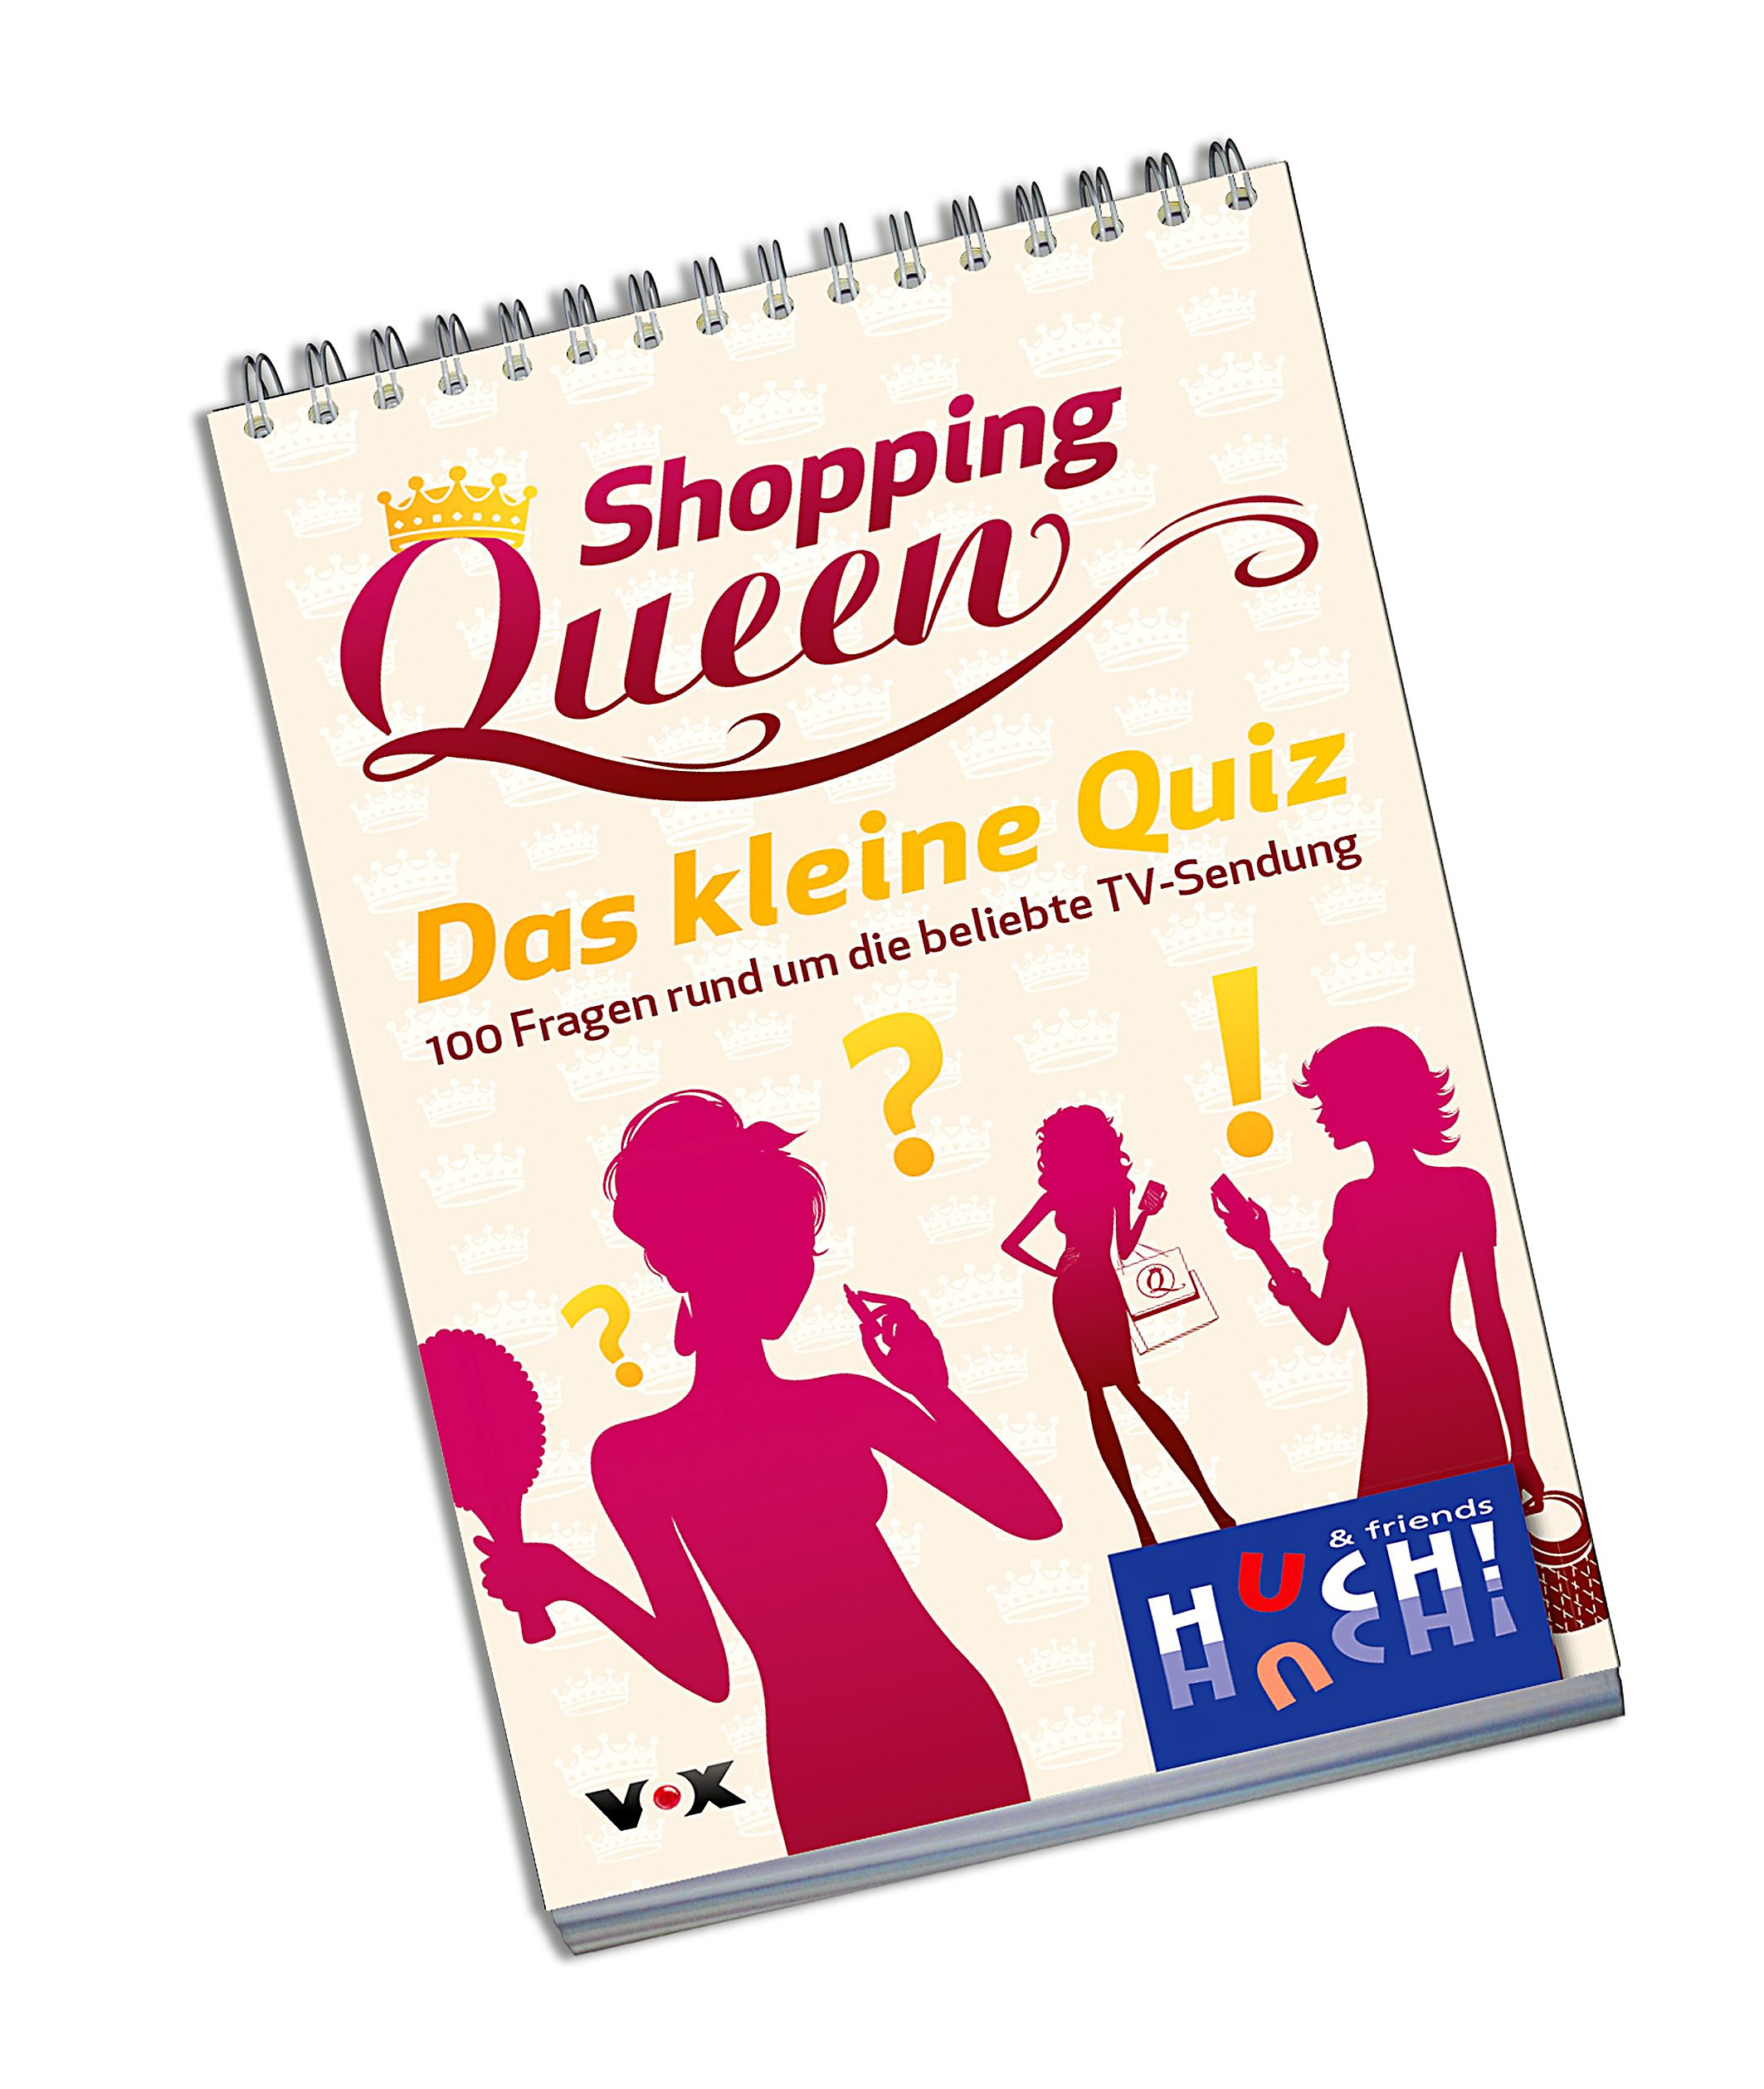 Shopping Spiele